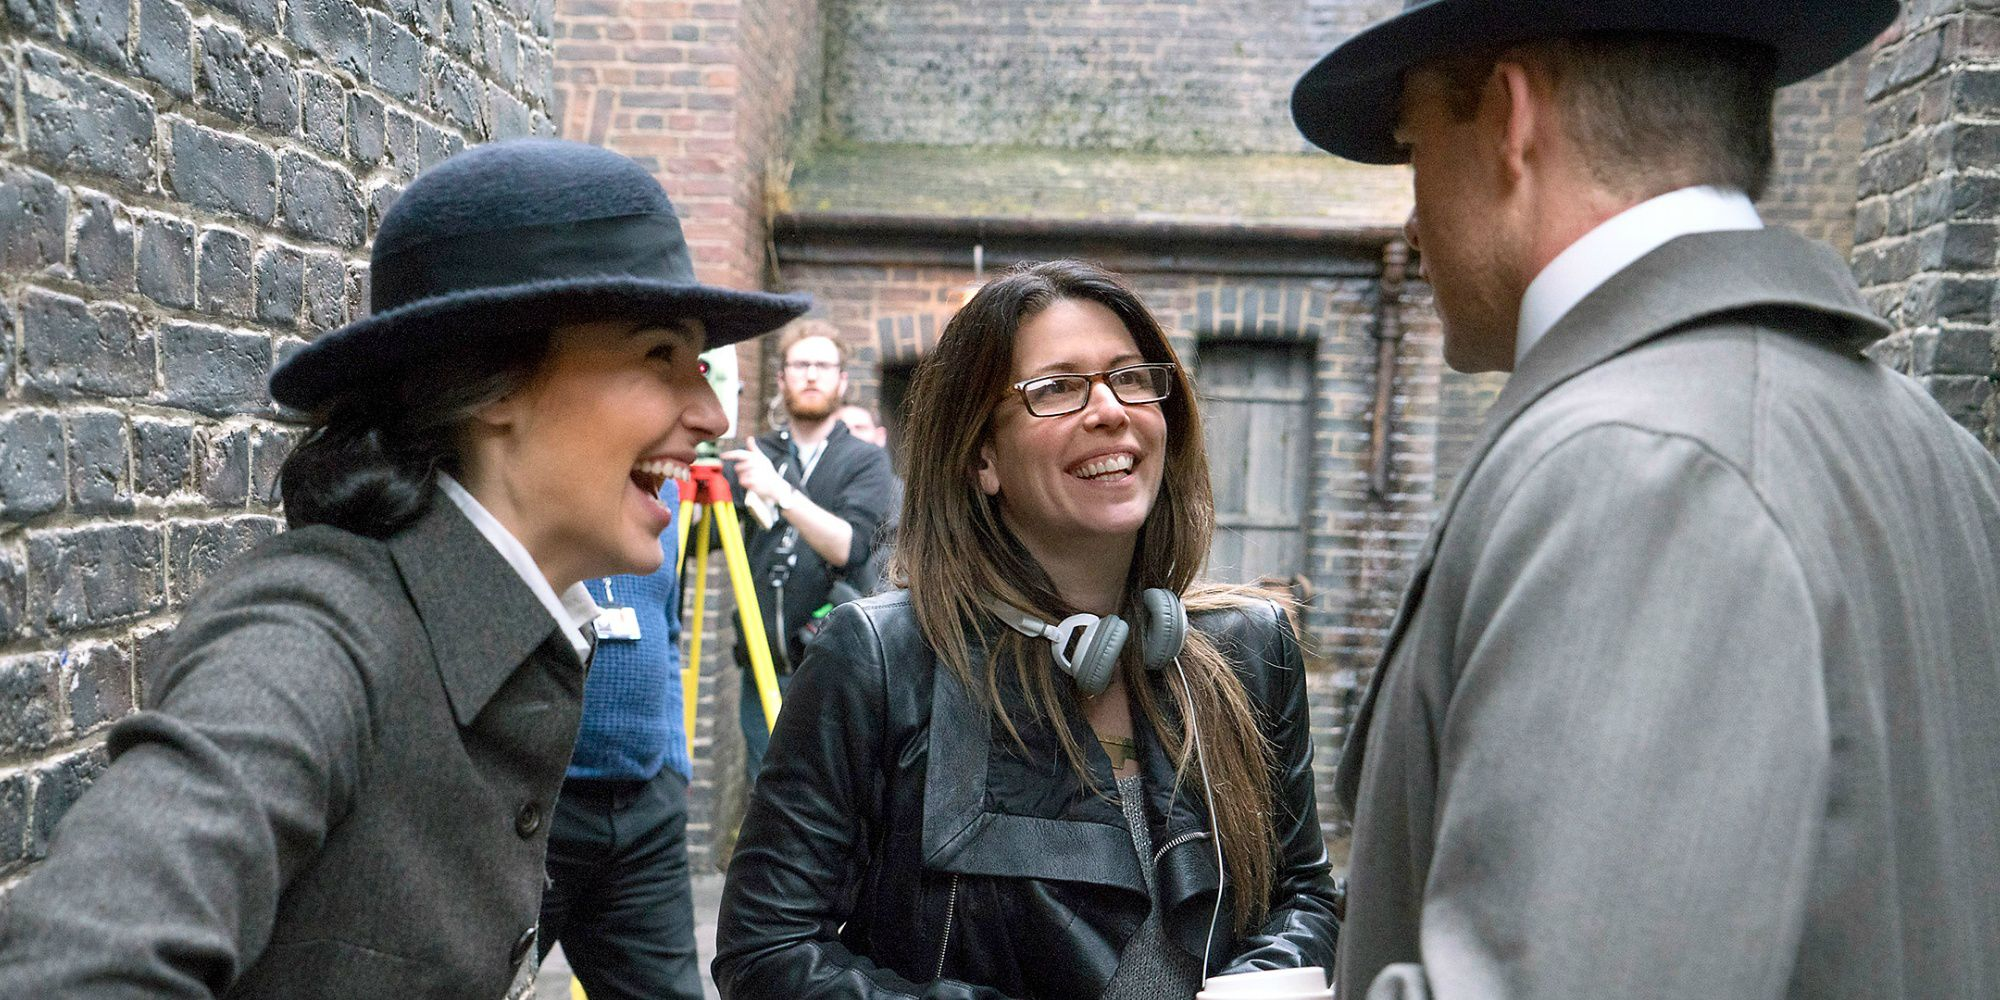 ¿Cuánto cobrará Patty Jenkins por dirigir Wonder Woman 2?